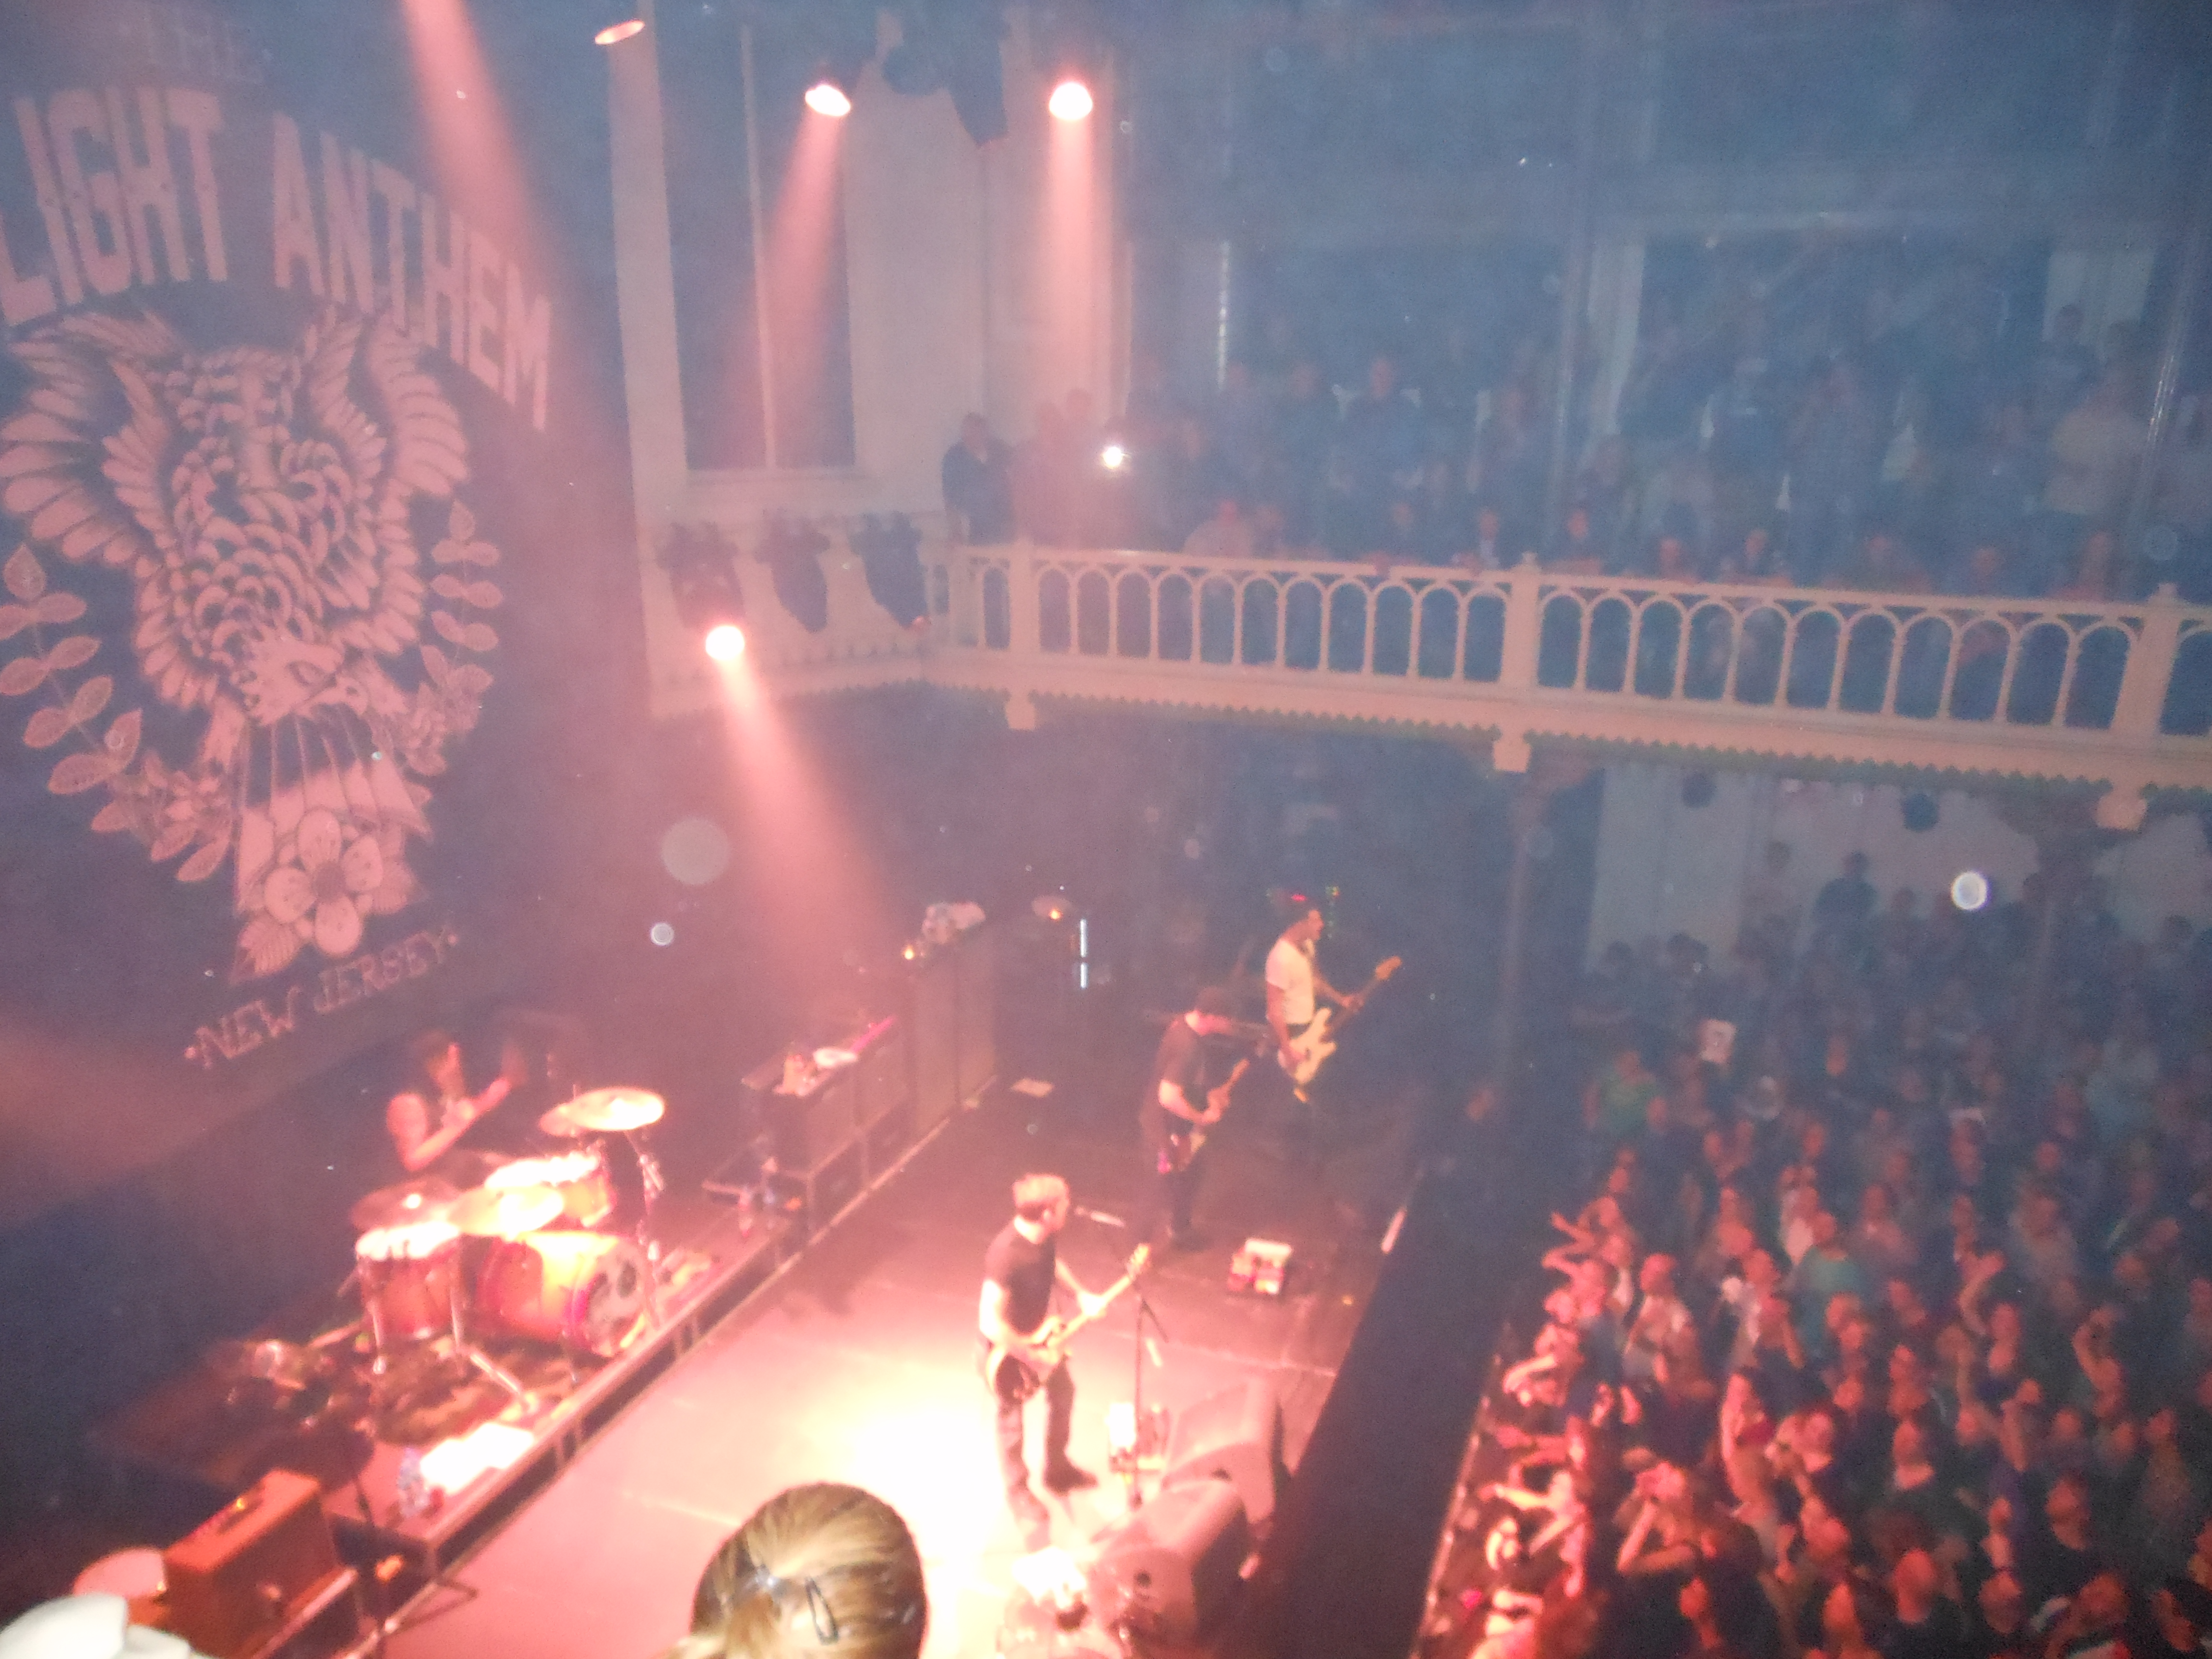 Concertreview: The last dance with The Gaslight Anthem